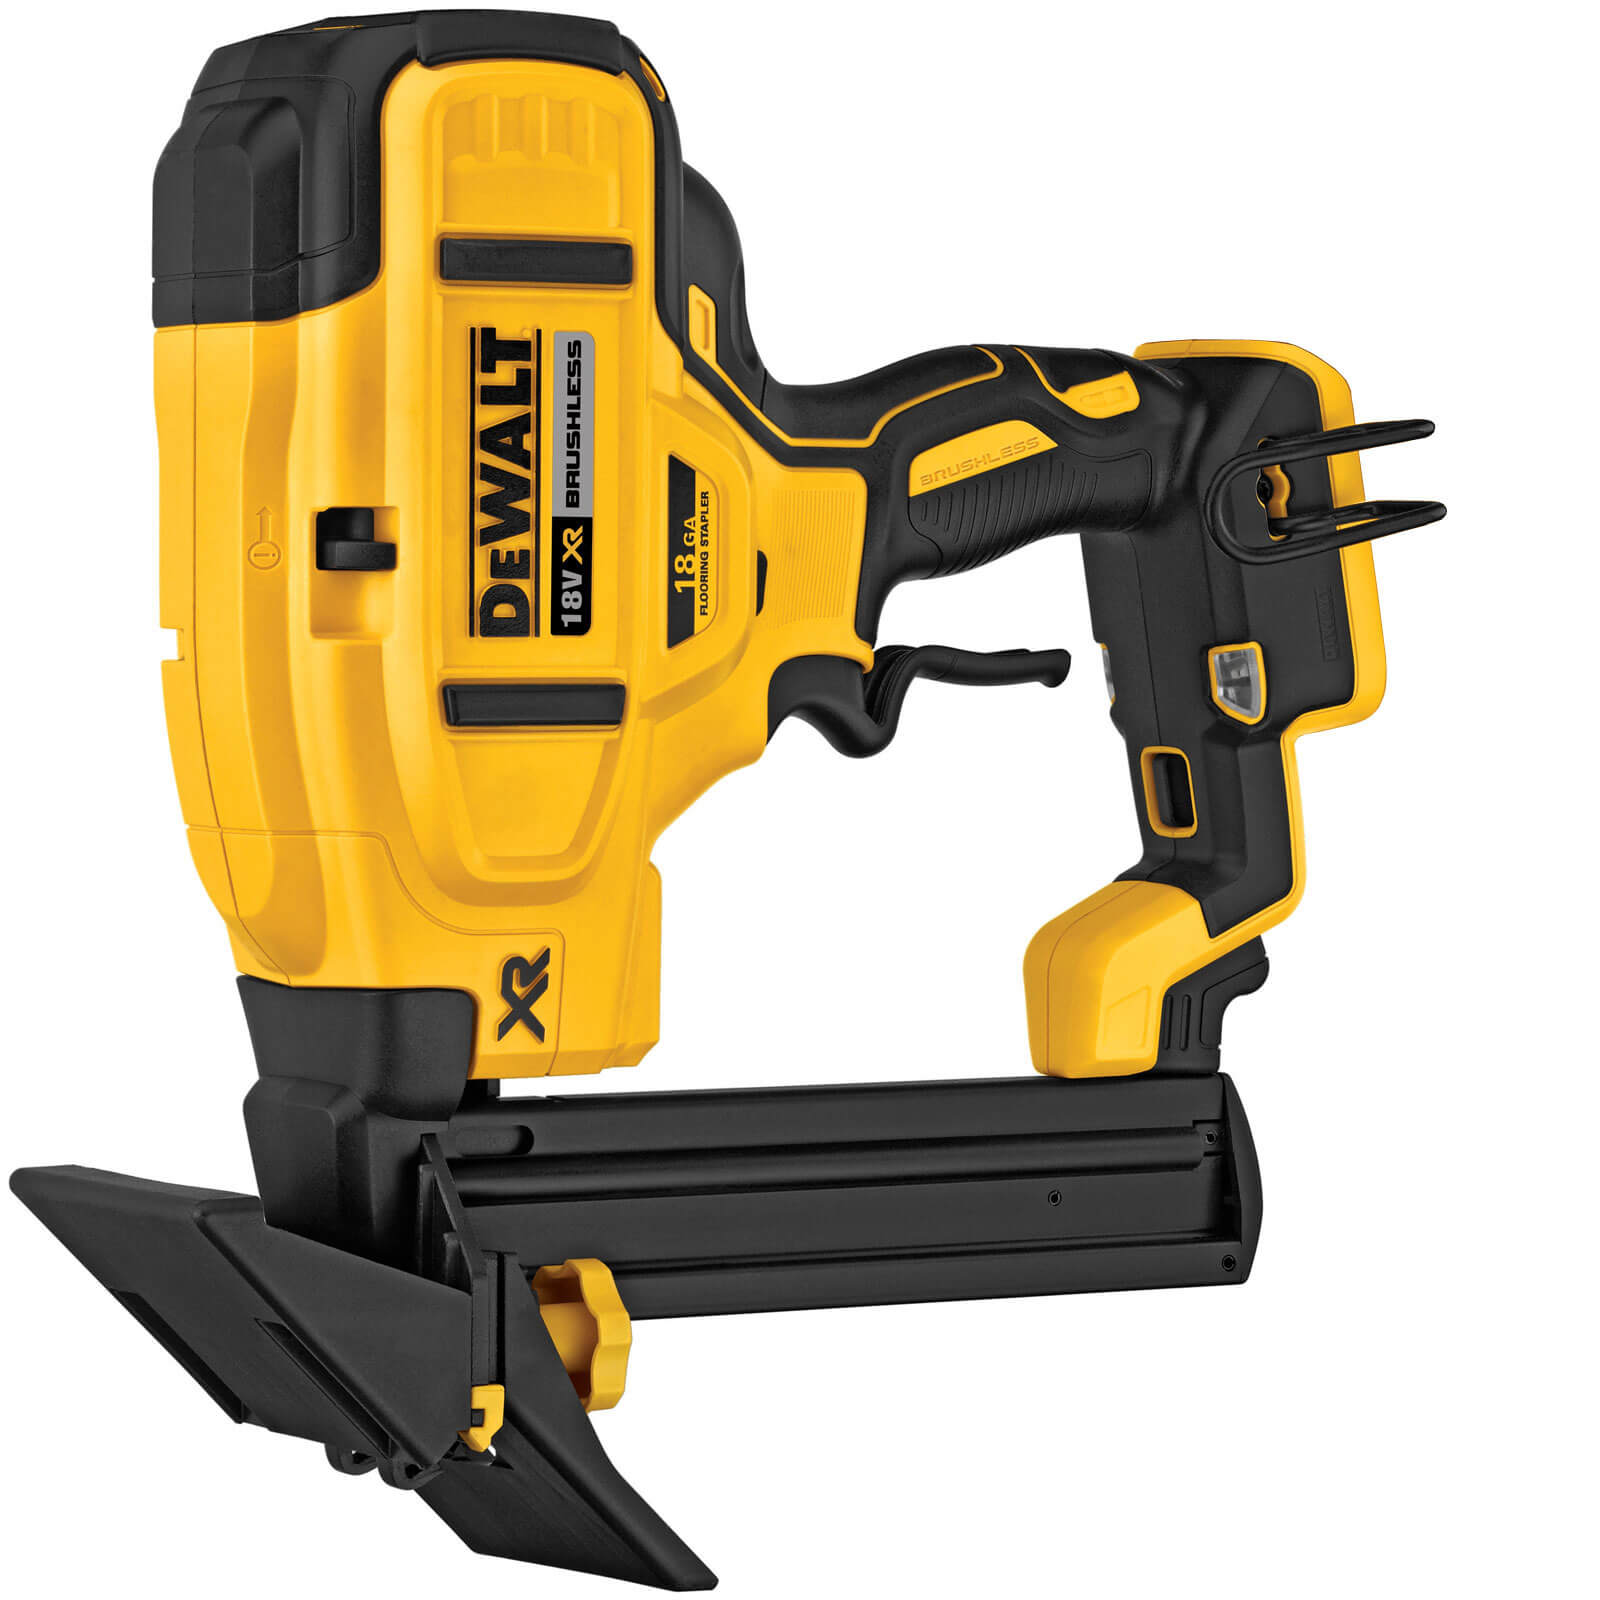 DeWalt DCN682N-XJ 18V XR Brushless 18GA Flooring Stapler Bare Unit